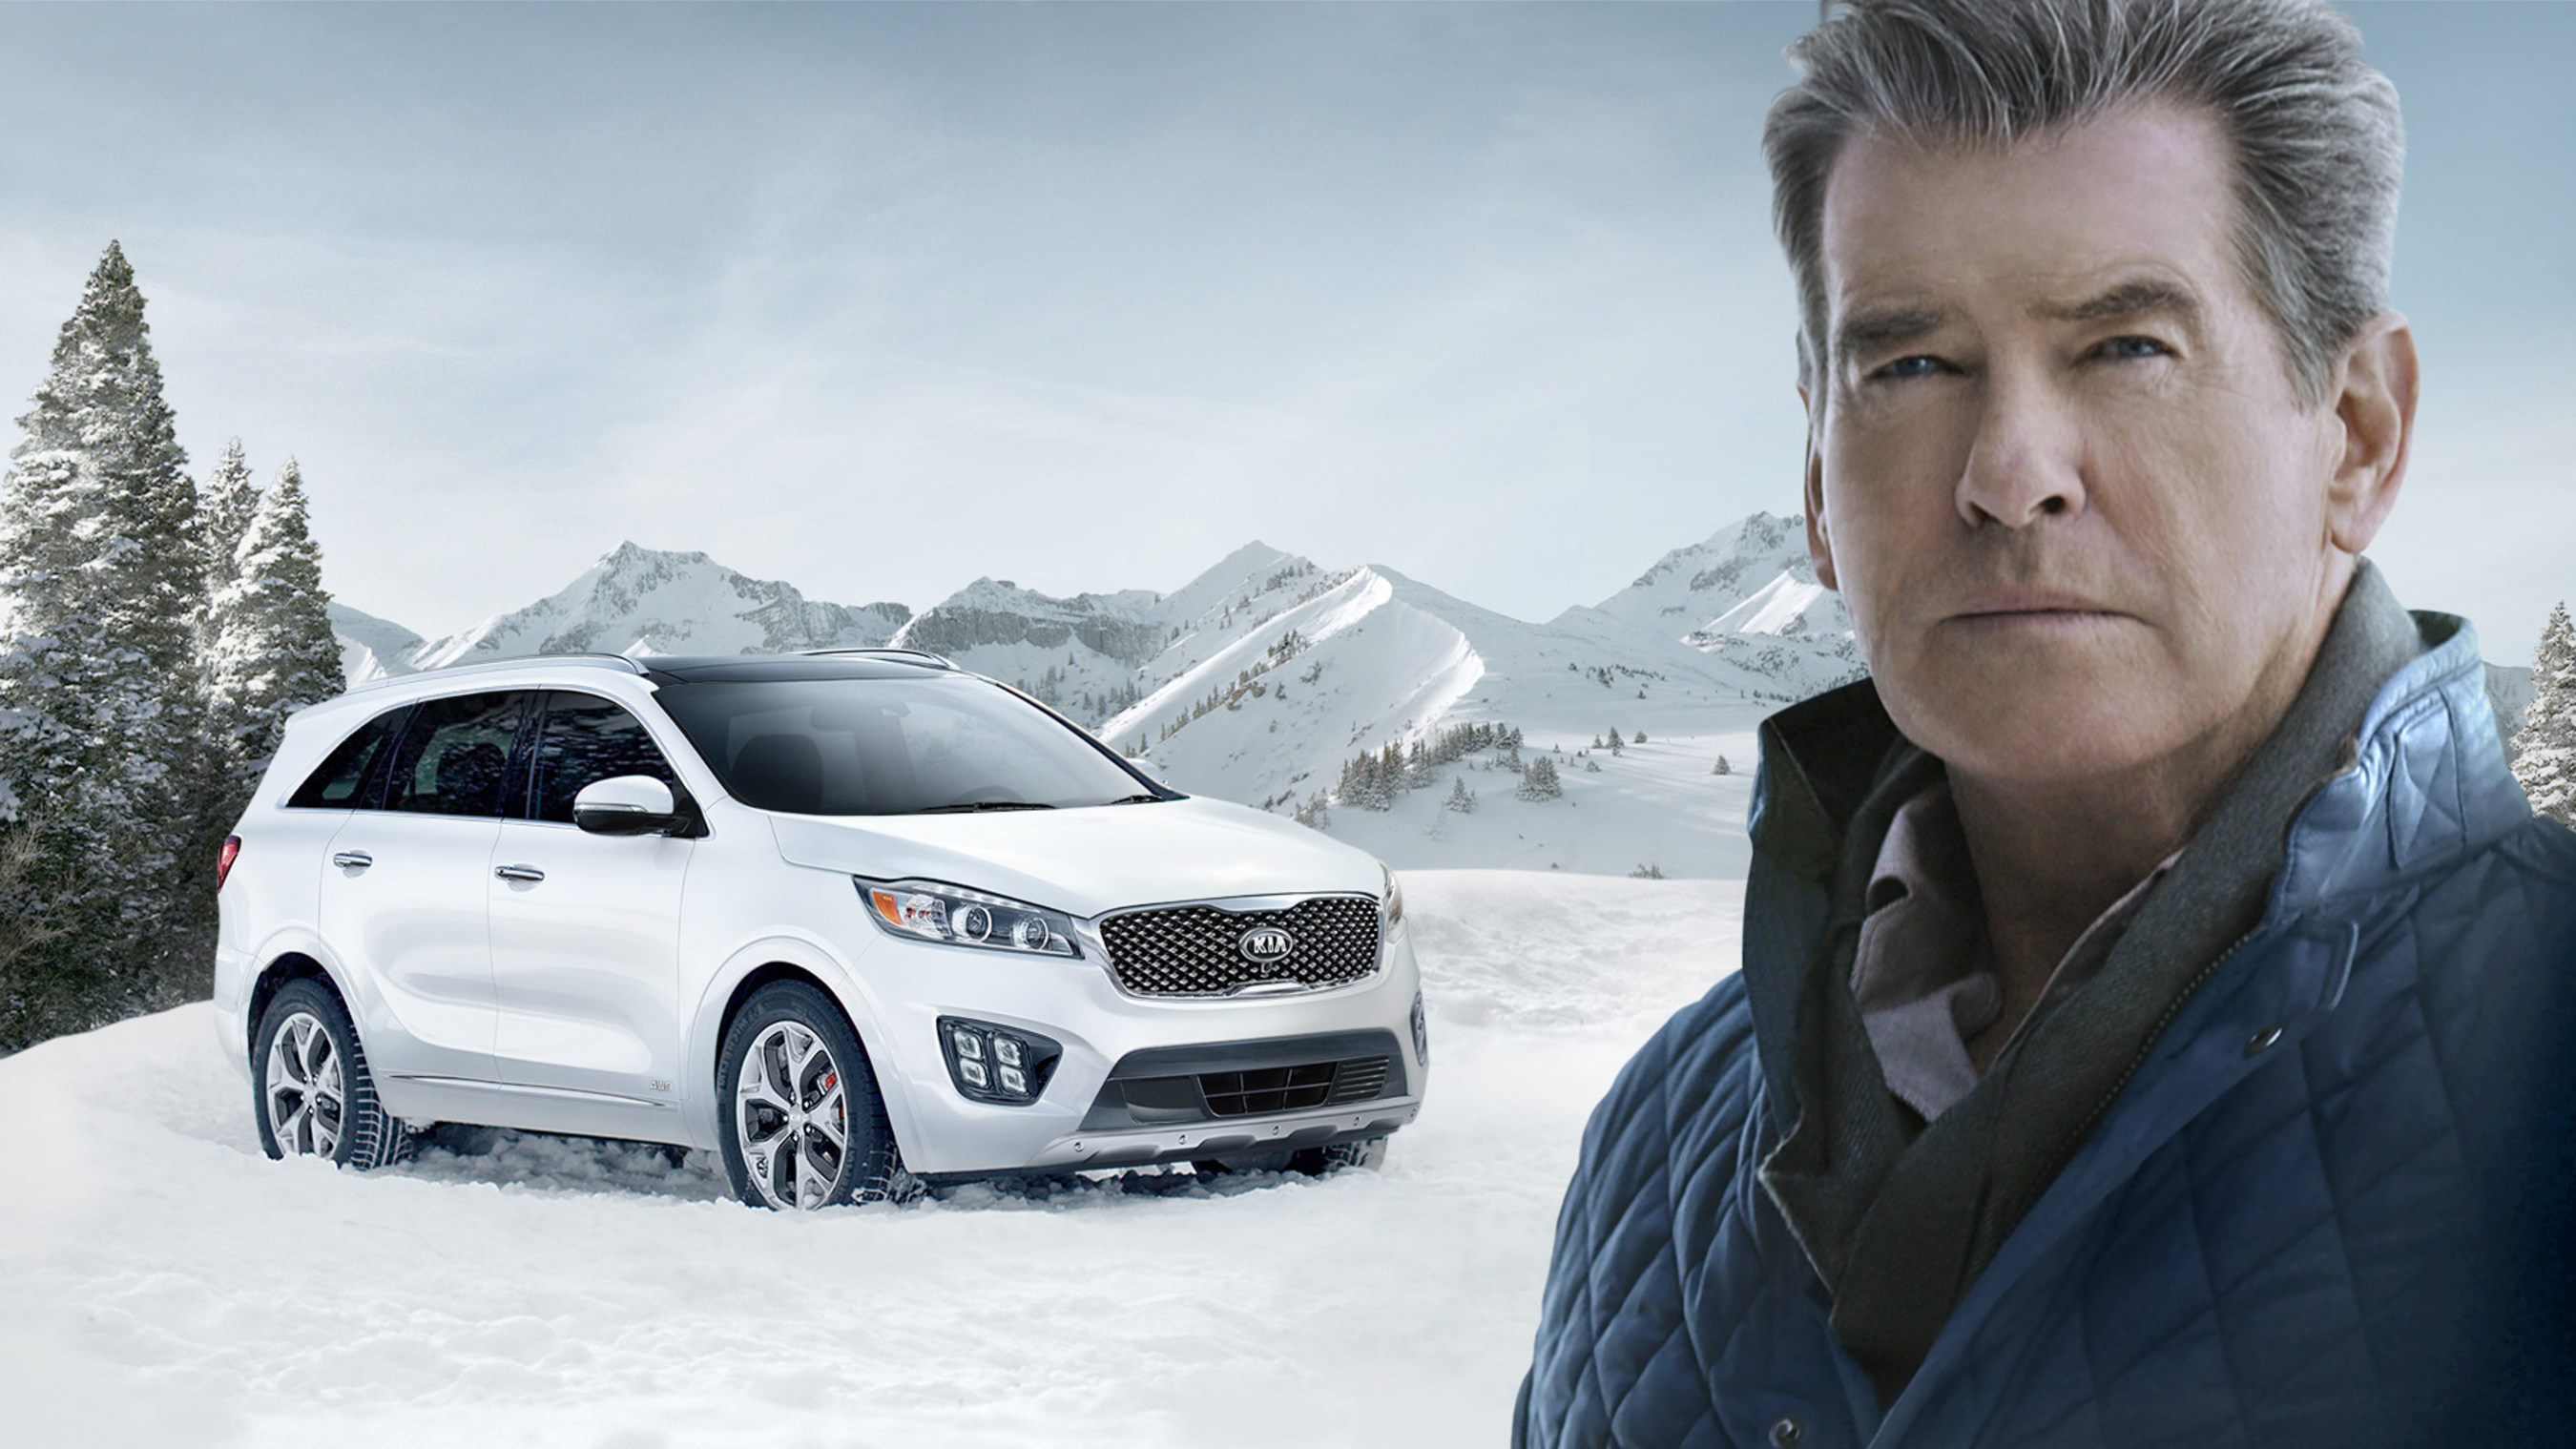 """Pierce Brosnan Makes The """"Perfect Getaway"""" In The All-New 2016 Sorento During Kia Motors' Super Bowl Commercial"""